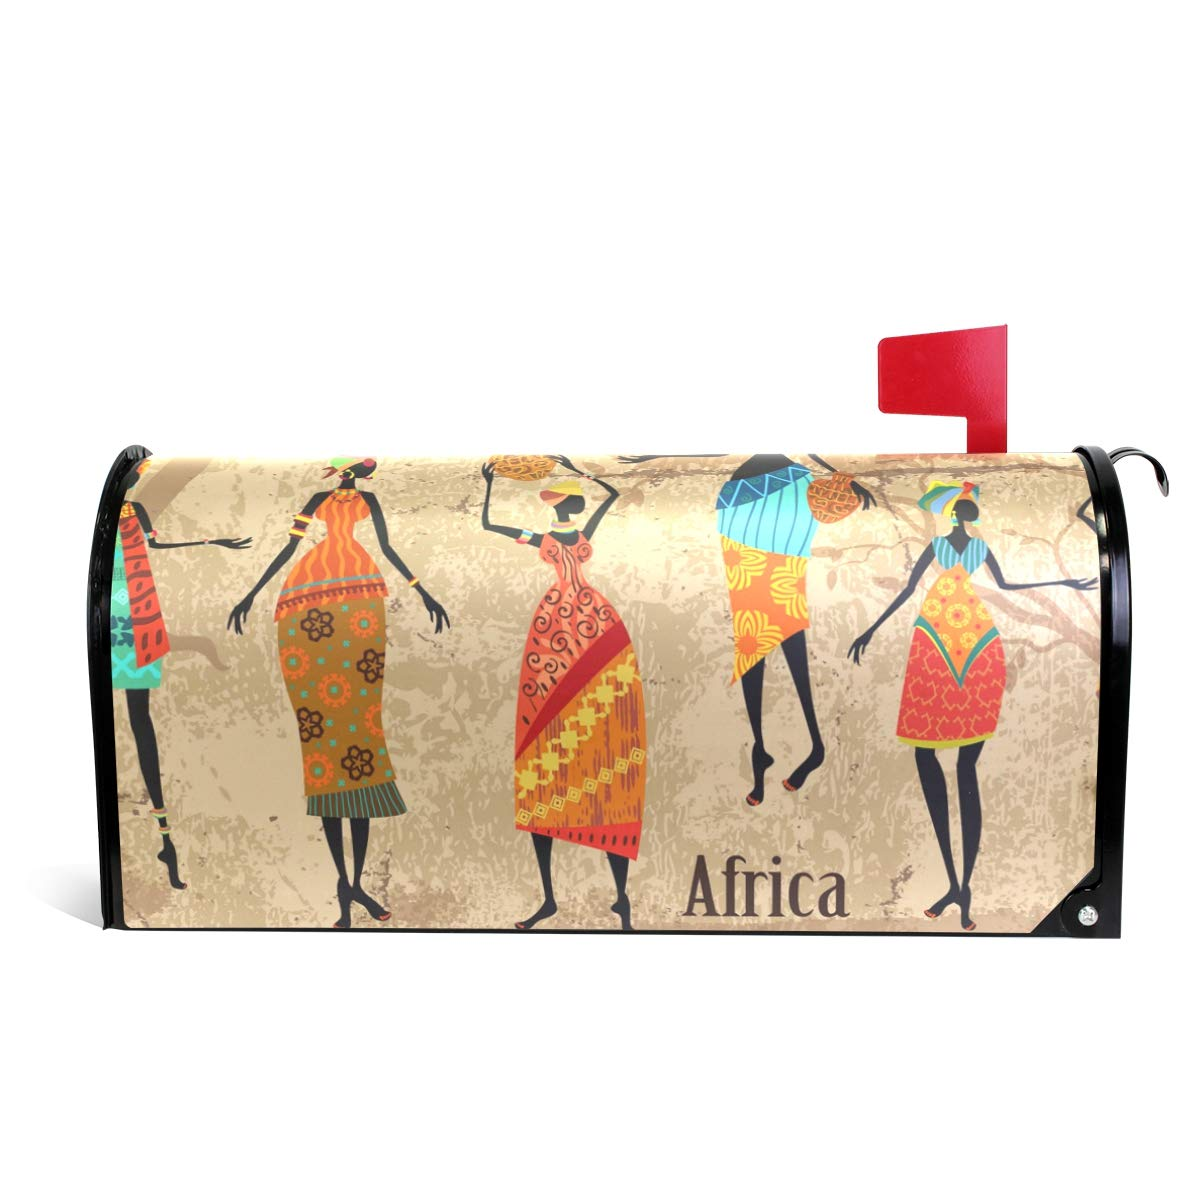 MAPOLO Vintage African Women Magnetic Mailbox Cover for Standard Size